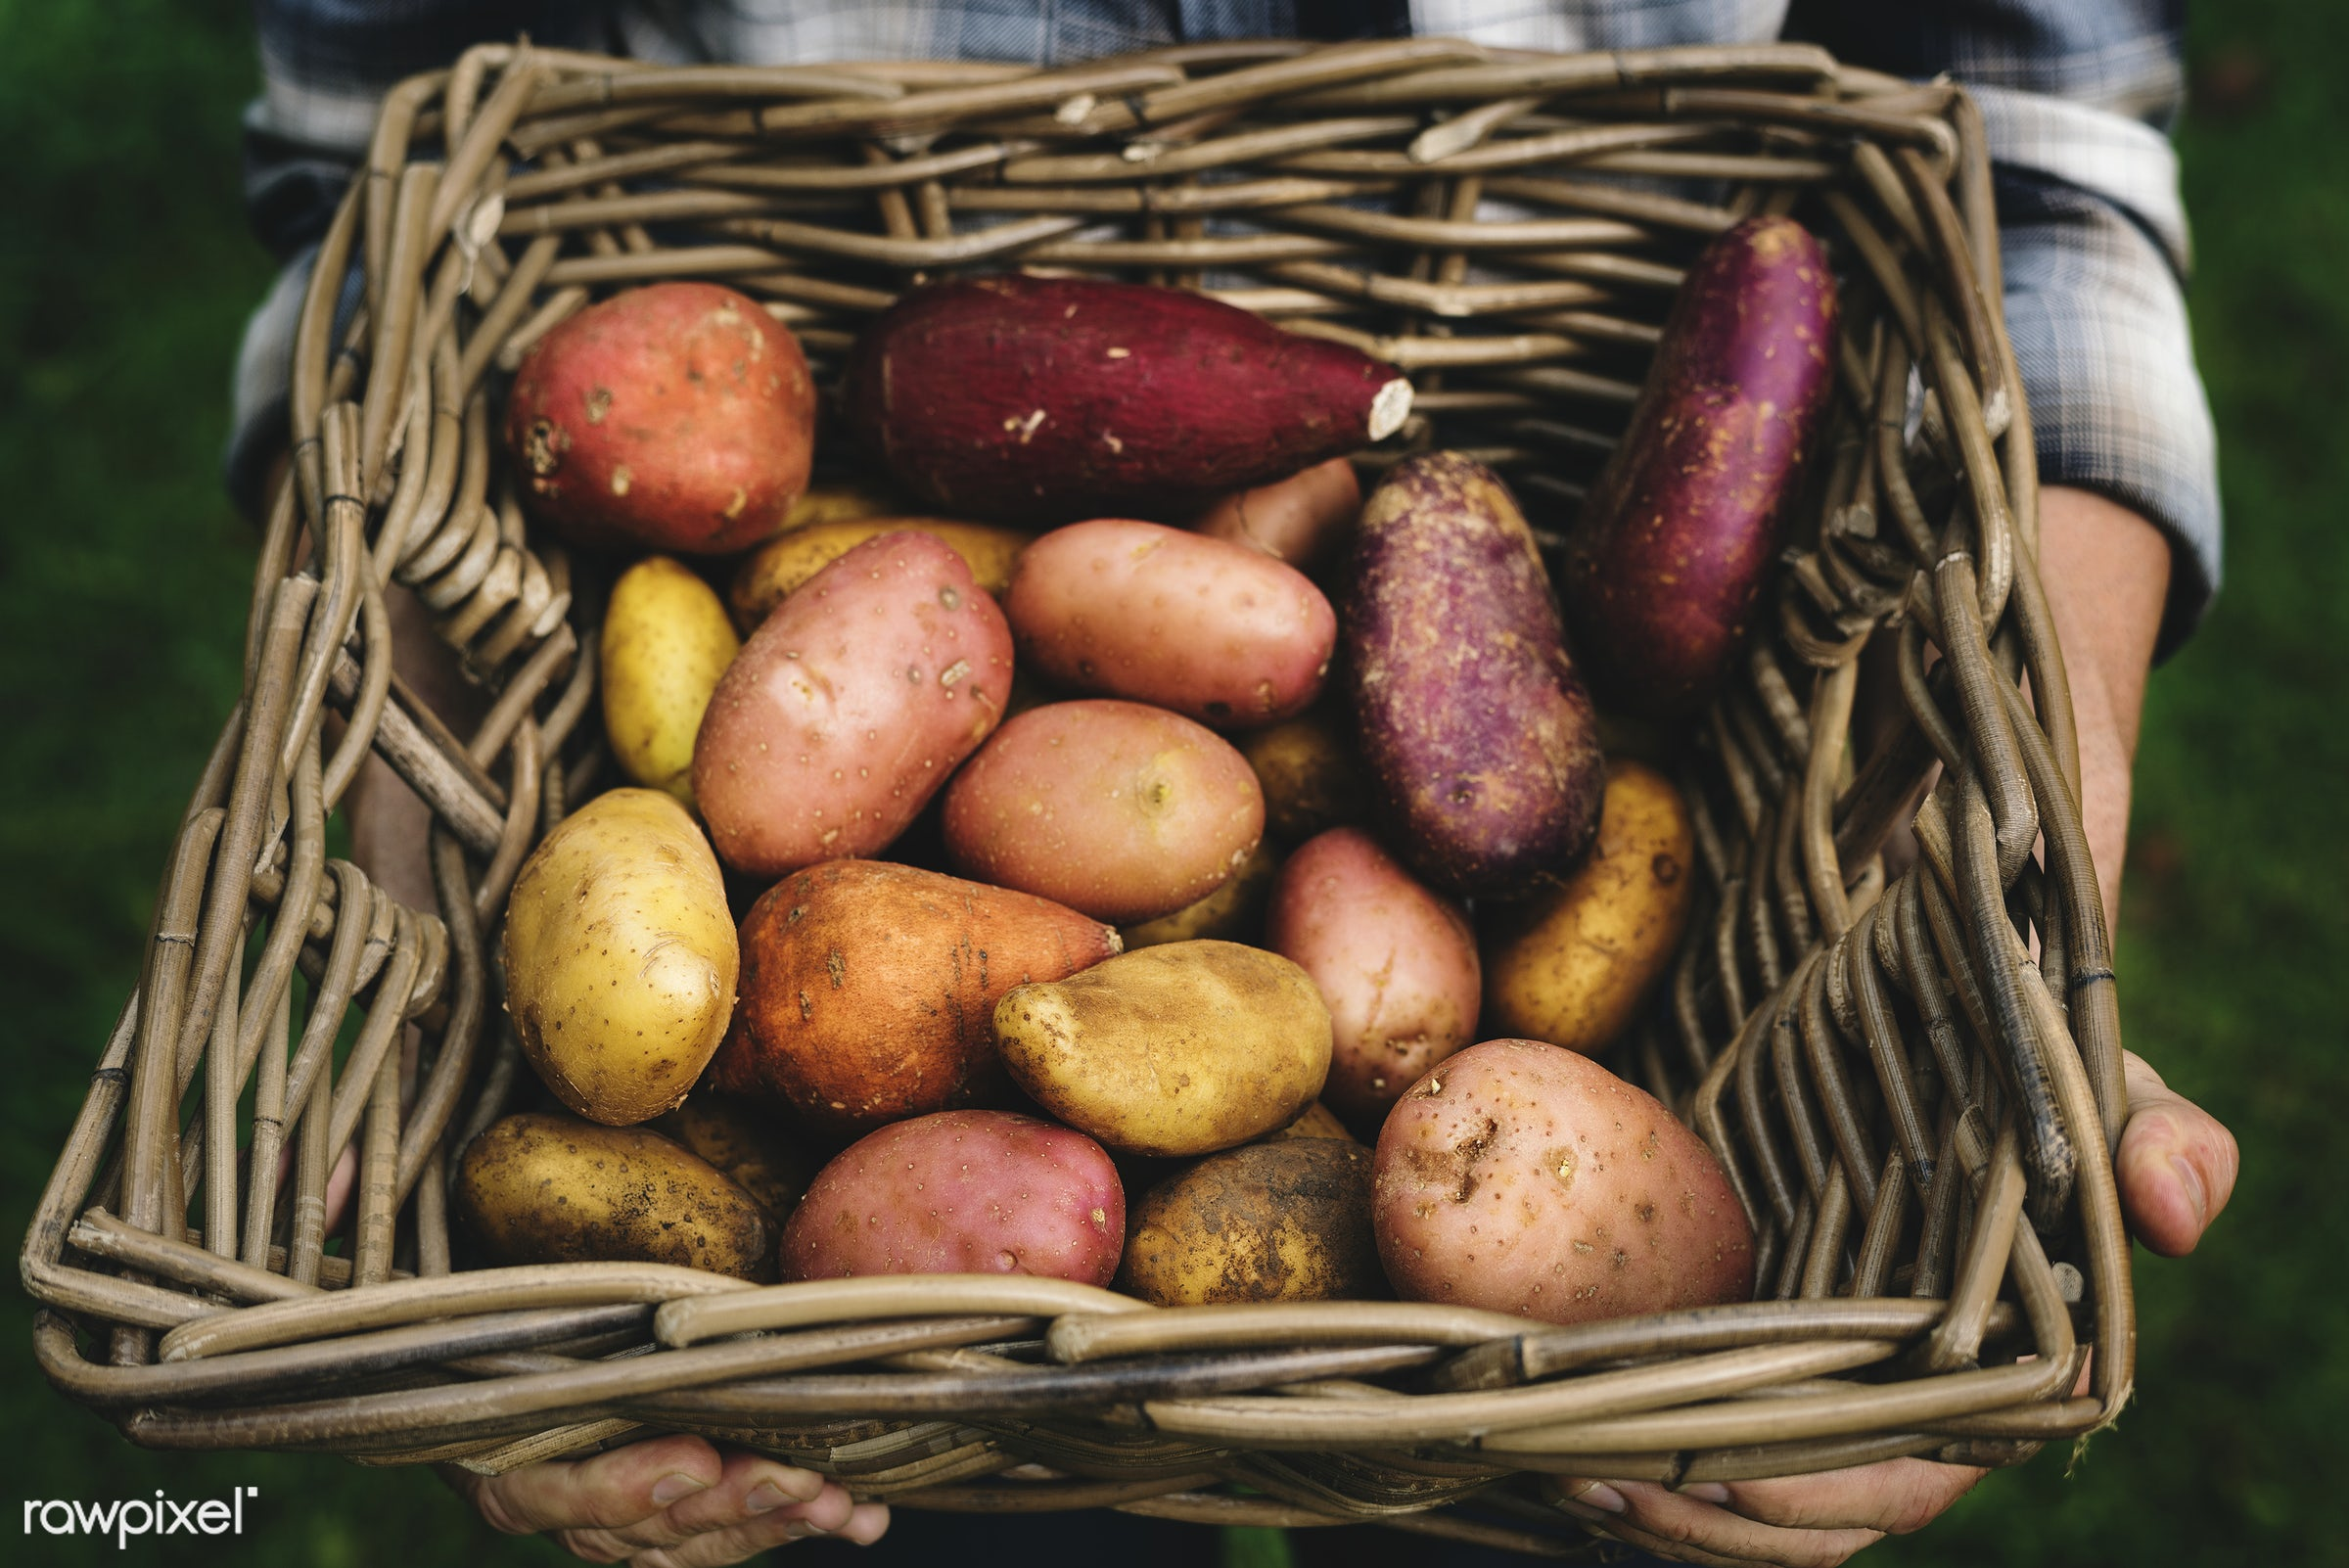 raw, potatoes, agriculture, sweet potato, product, real, organic, nature, fresh, various, vegetable, dirt, wooden basket,...